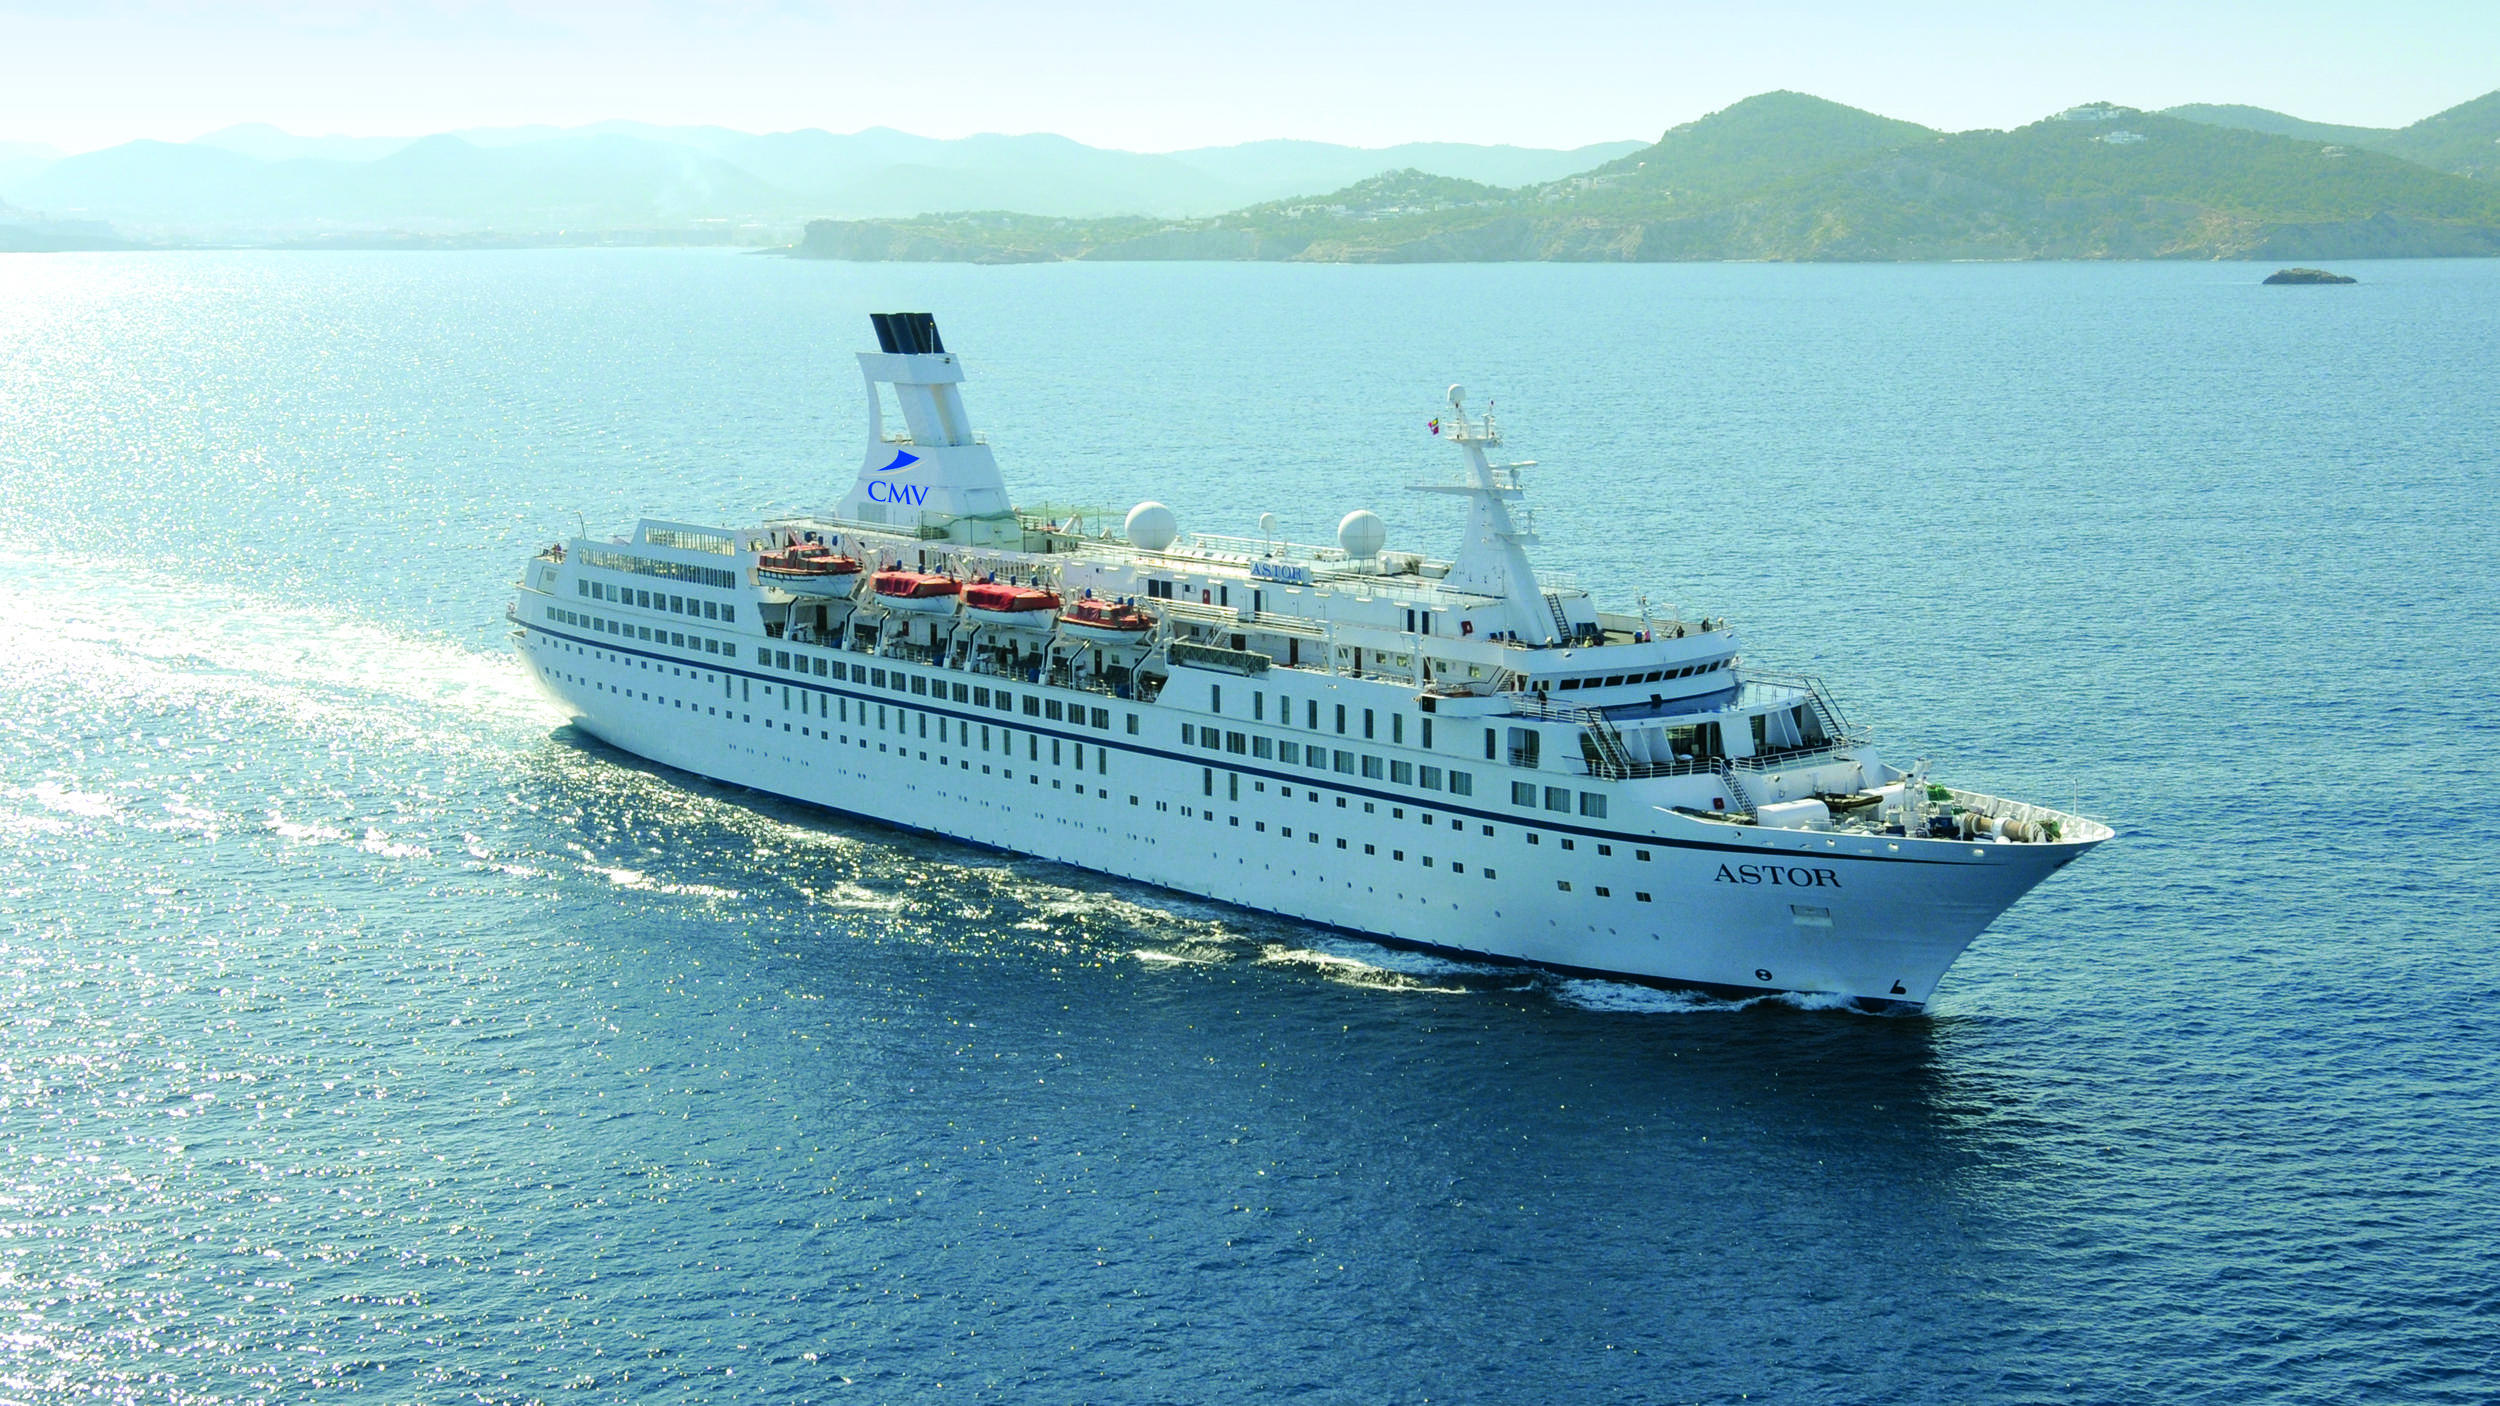 Cruise Maritime Voyages Astor Cruise Ship Reviews UPDATED - Cruise ship arrivals adelaide